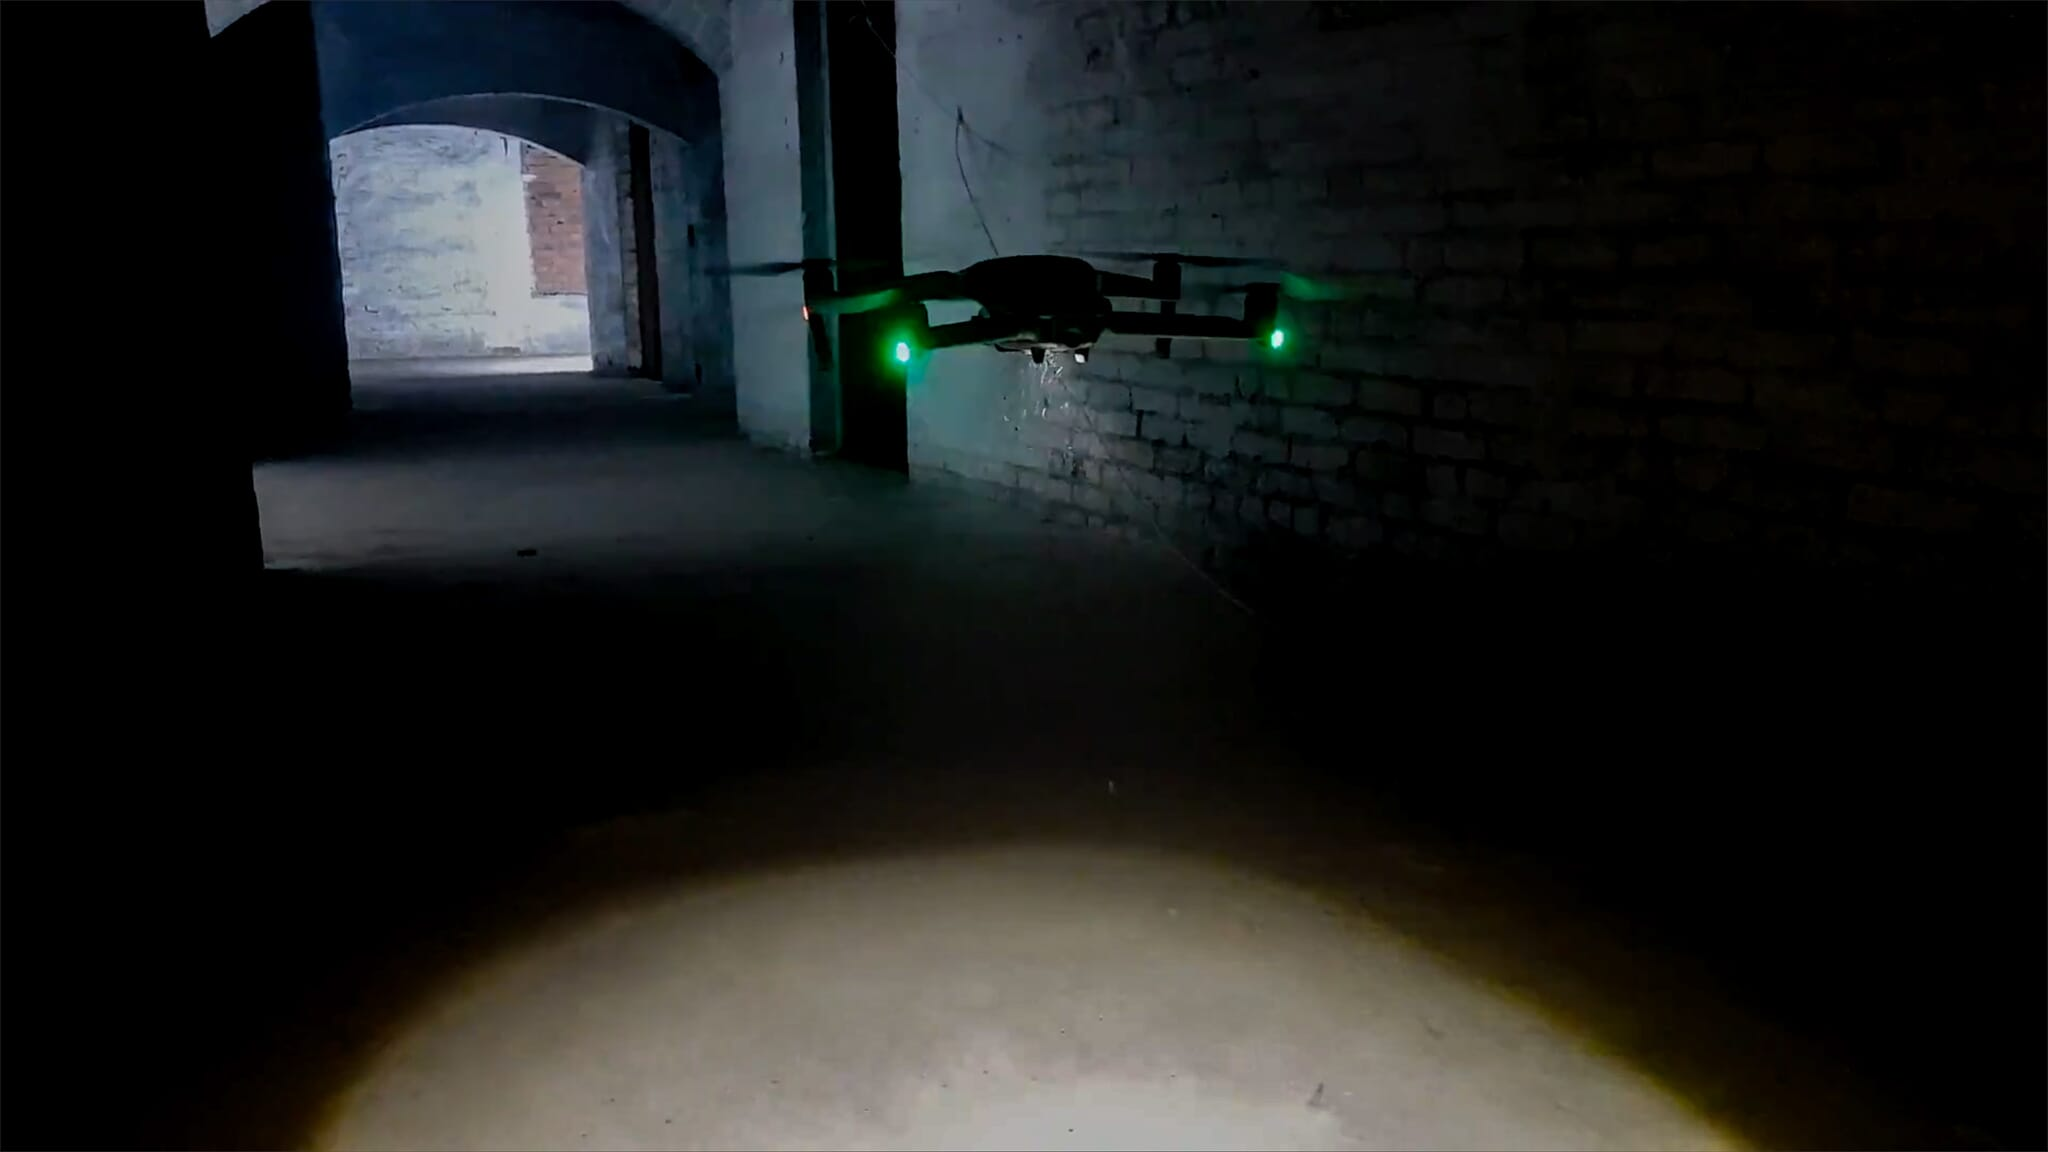 Mavic 2 drone flying in a dark tunnel